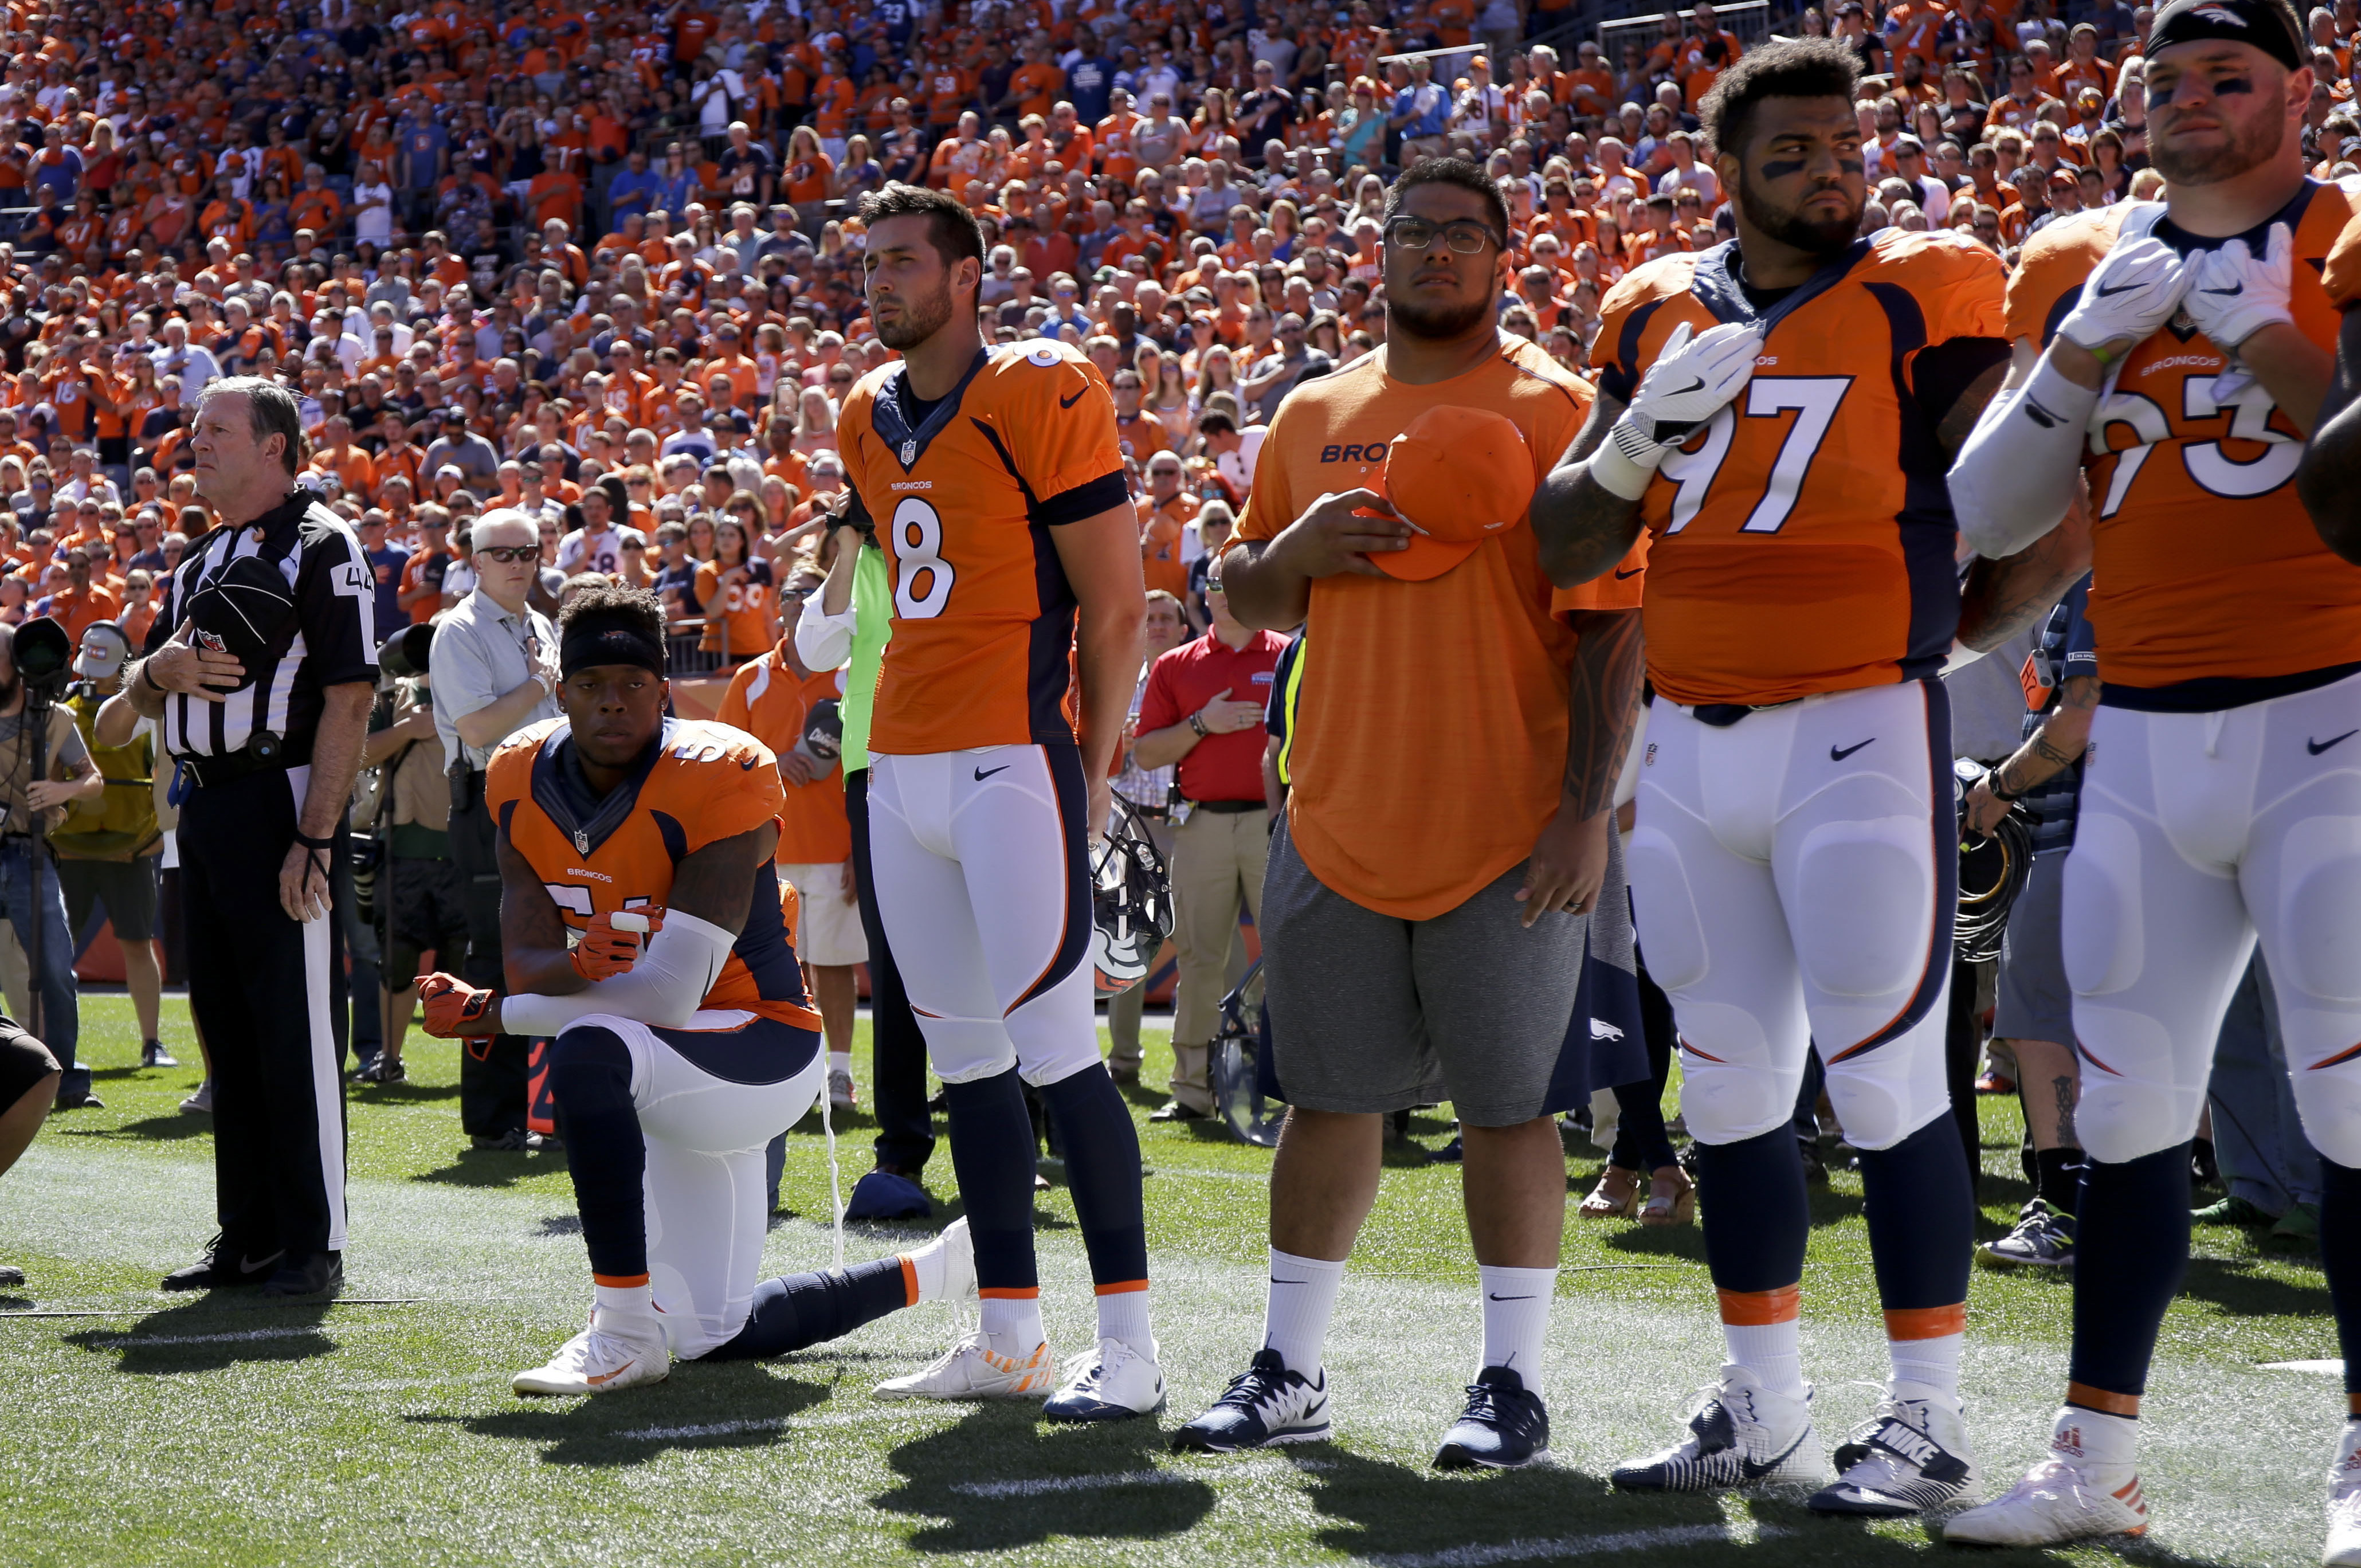 FILE - In this Sept. 18, 2016, file photo, Denver Broncos inside linebacker Brandon Marshall takes a knee during the national anthem before an NFL football game against the Indianapolis Colts in Denver. Marshall posted a racist, threatening letter he rece